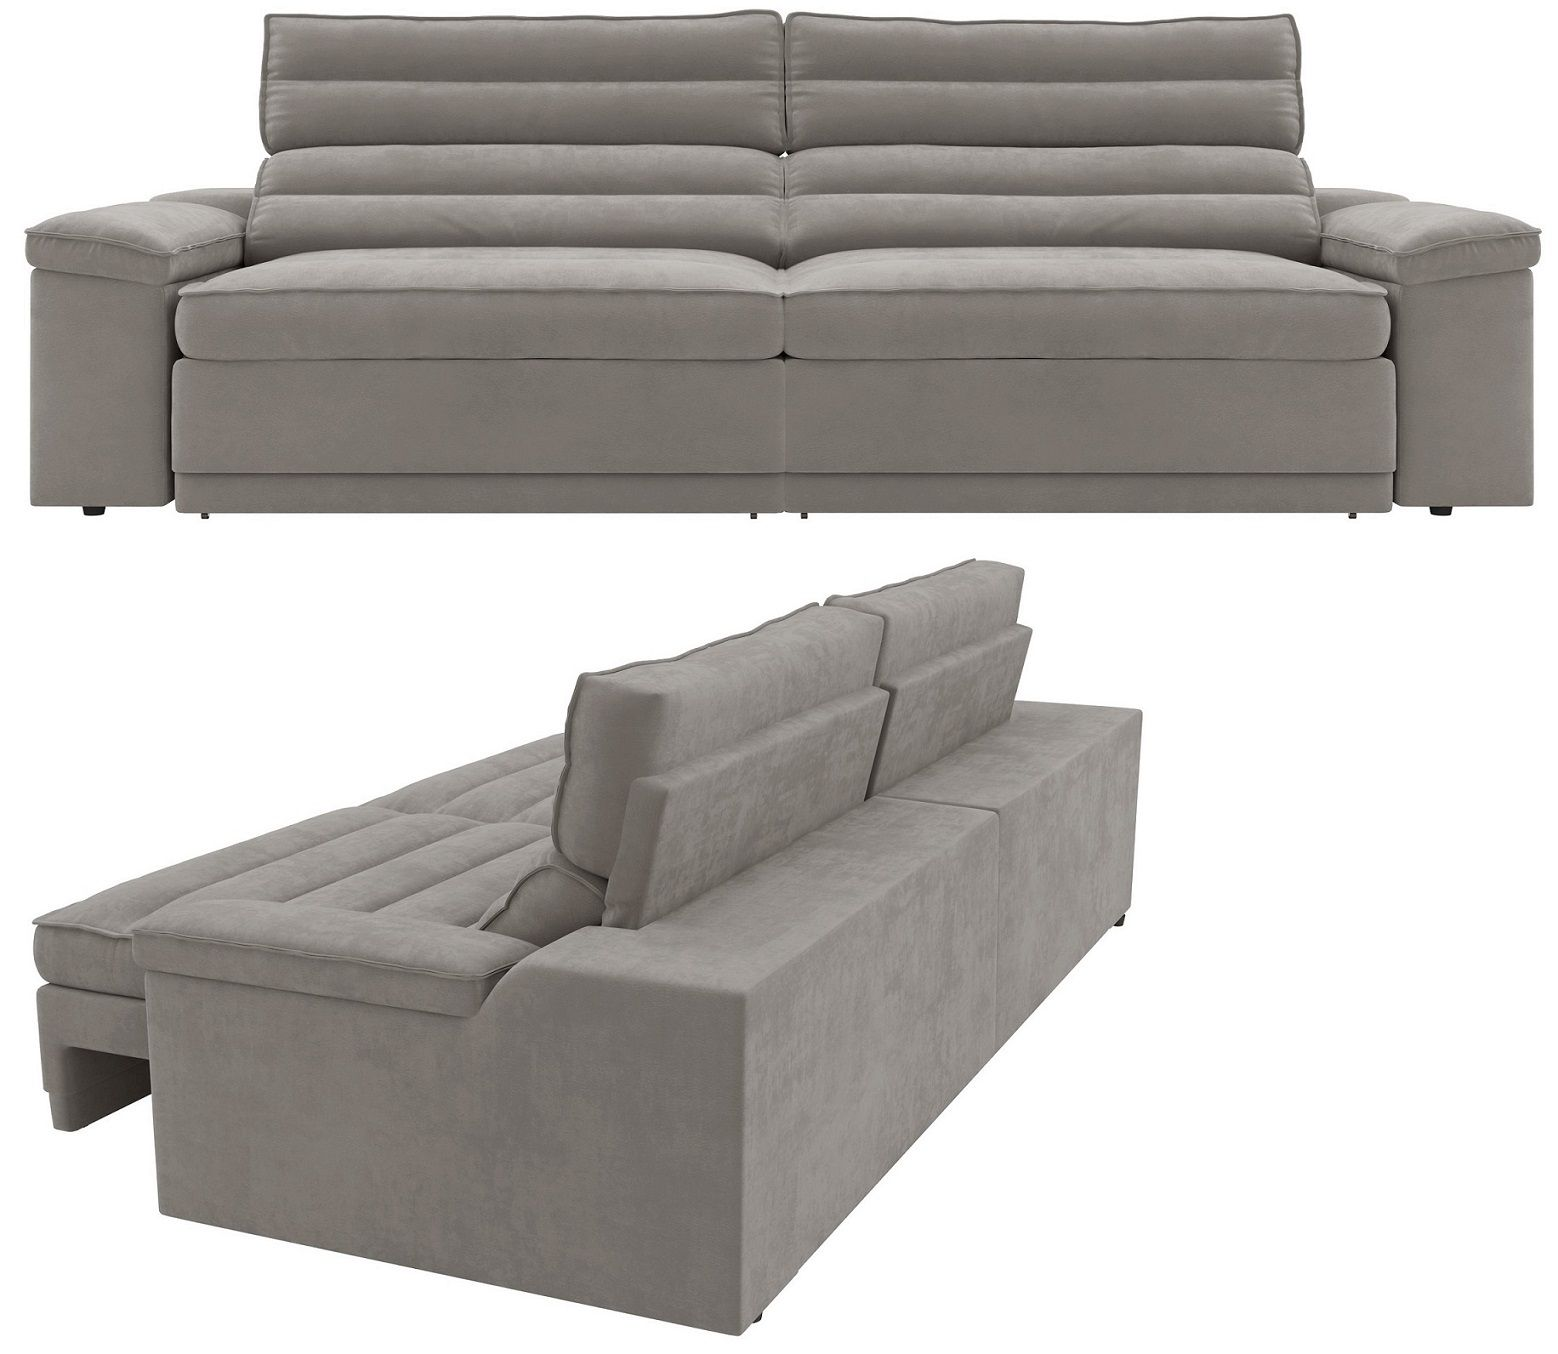 Sof 4 lugares net lincoln assento retr til e reclin vel for Sofa 4 lugares reclinavel e assento retratil